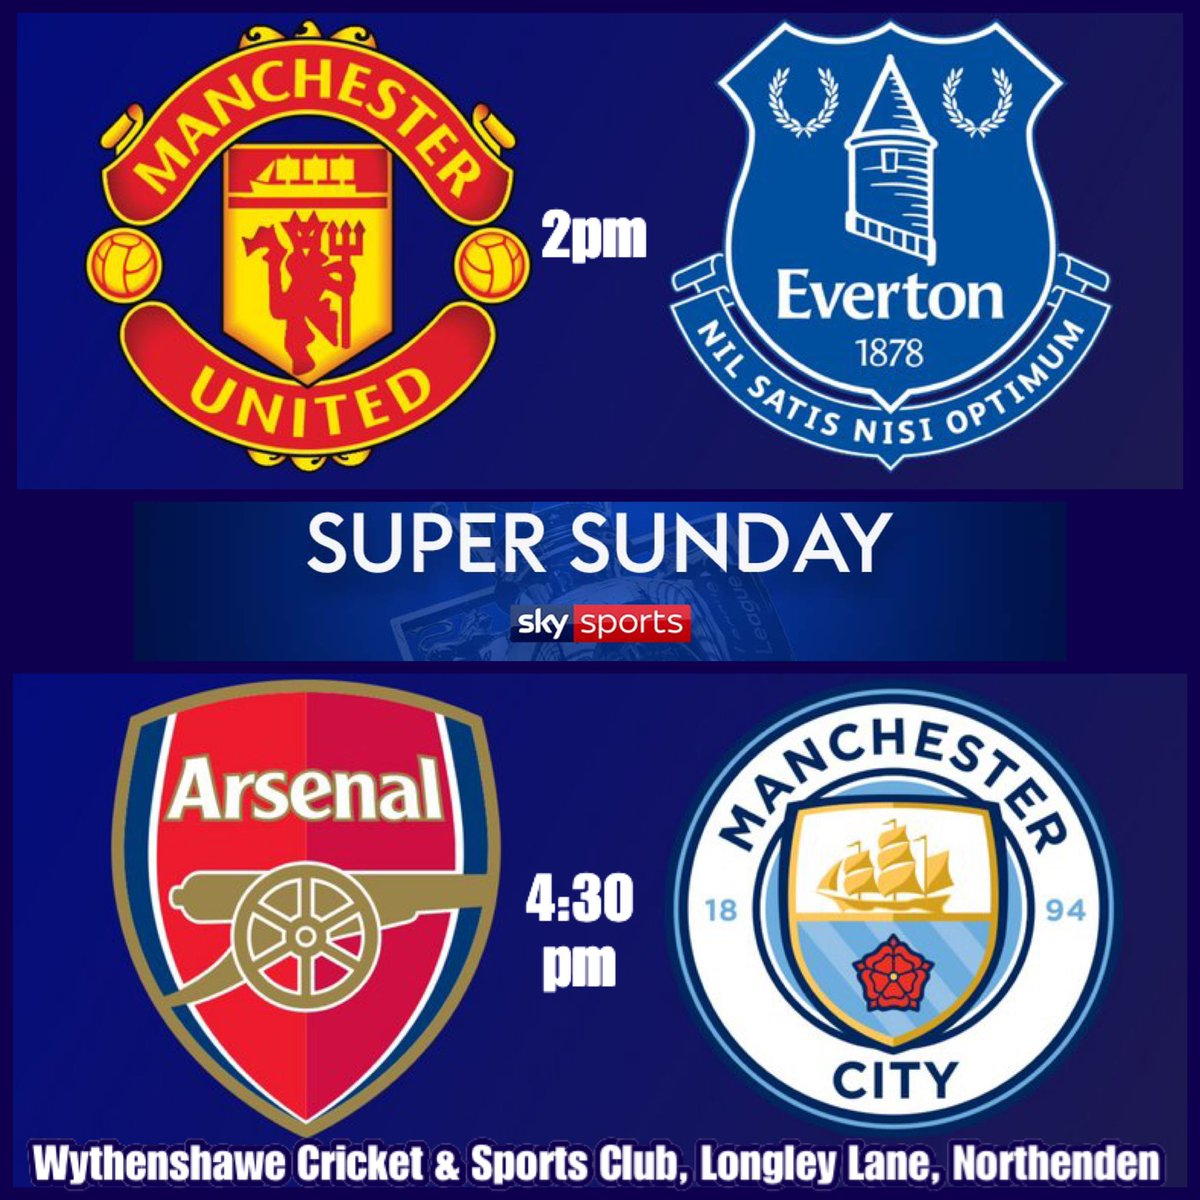 It's SUPER SUNDAY here tomorrow at Wythenshawe Cricket & Sports Club, Longley Lane, Northenden  Both MUFC & MCFC's Premier League games LIVE on our BIG screen  MUFC v EVERTON 2pm ARSENAL v MCFC 4:30pm ALL WELCOME  <br>http://pic.twitter.com/cmcAwmeXsO